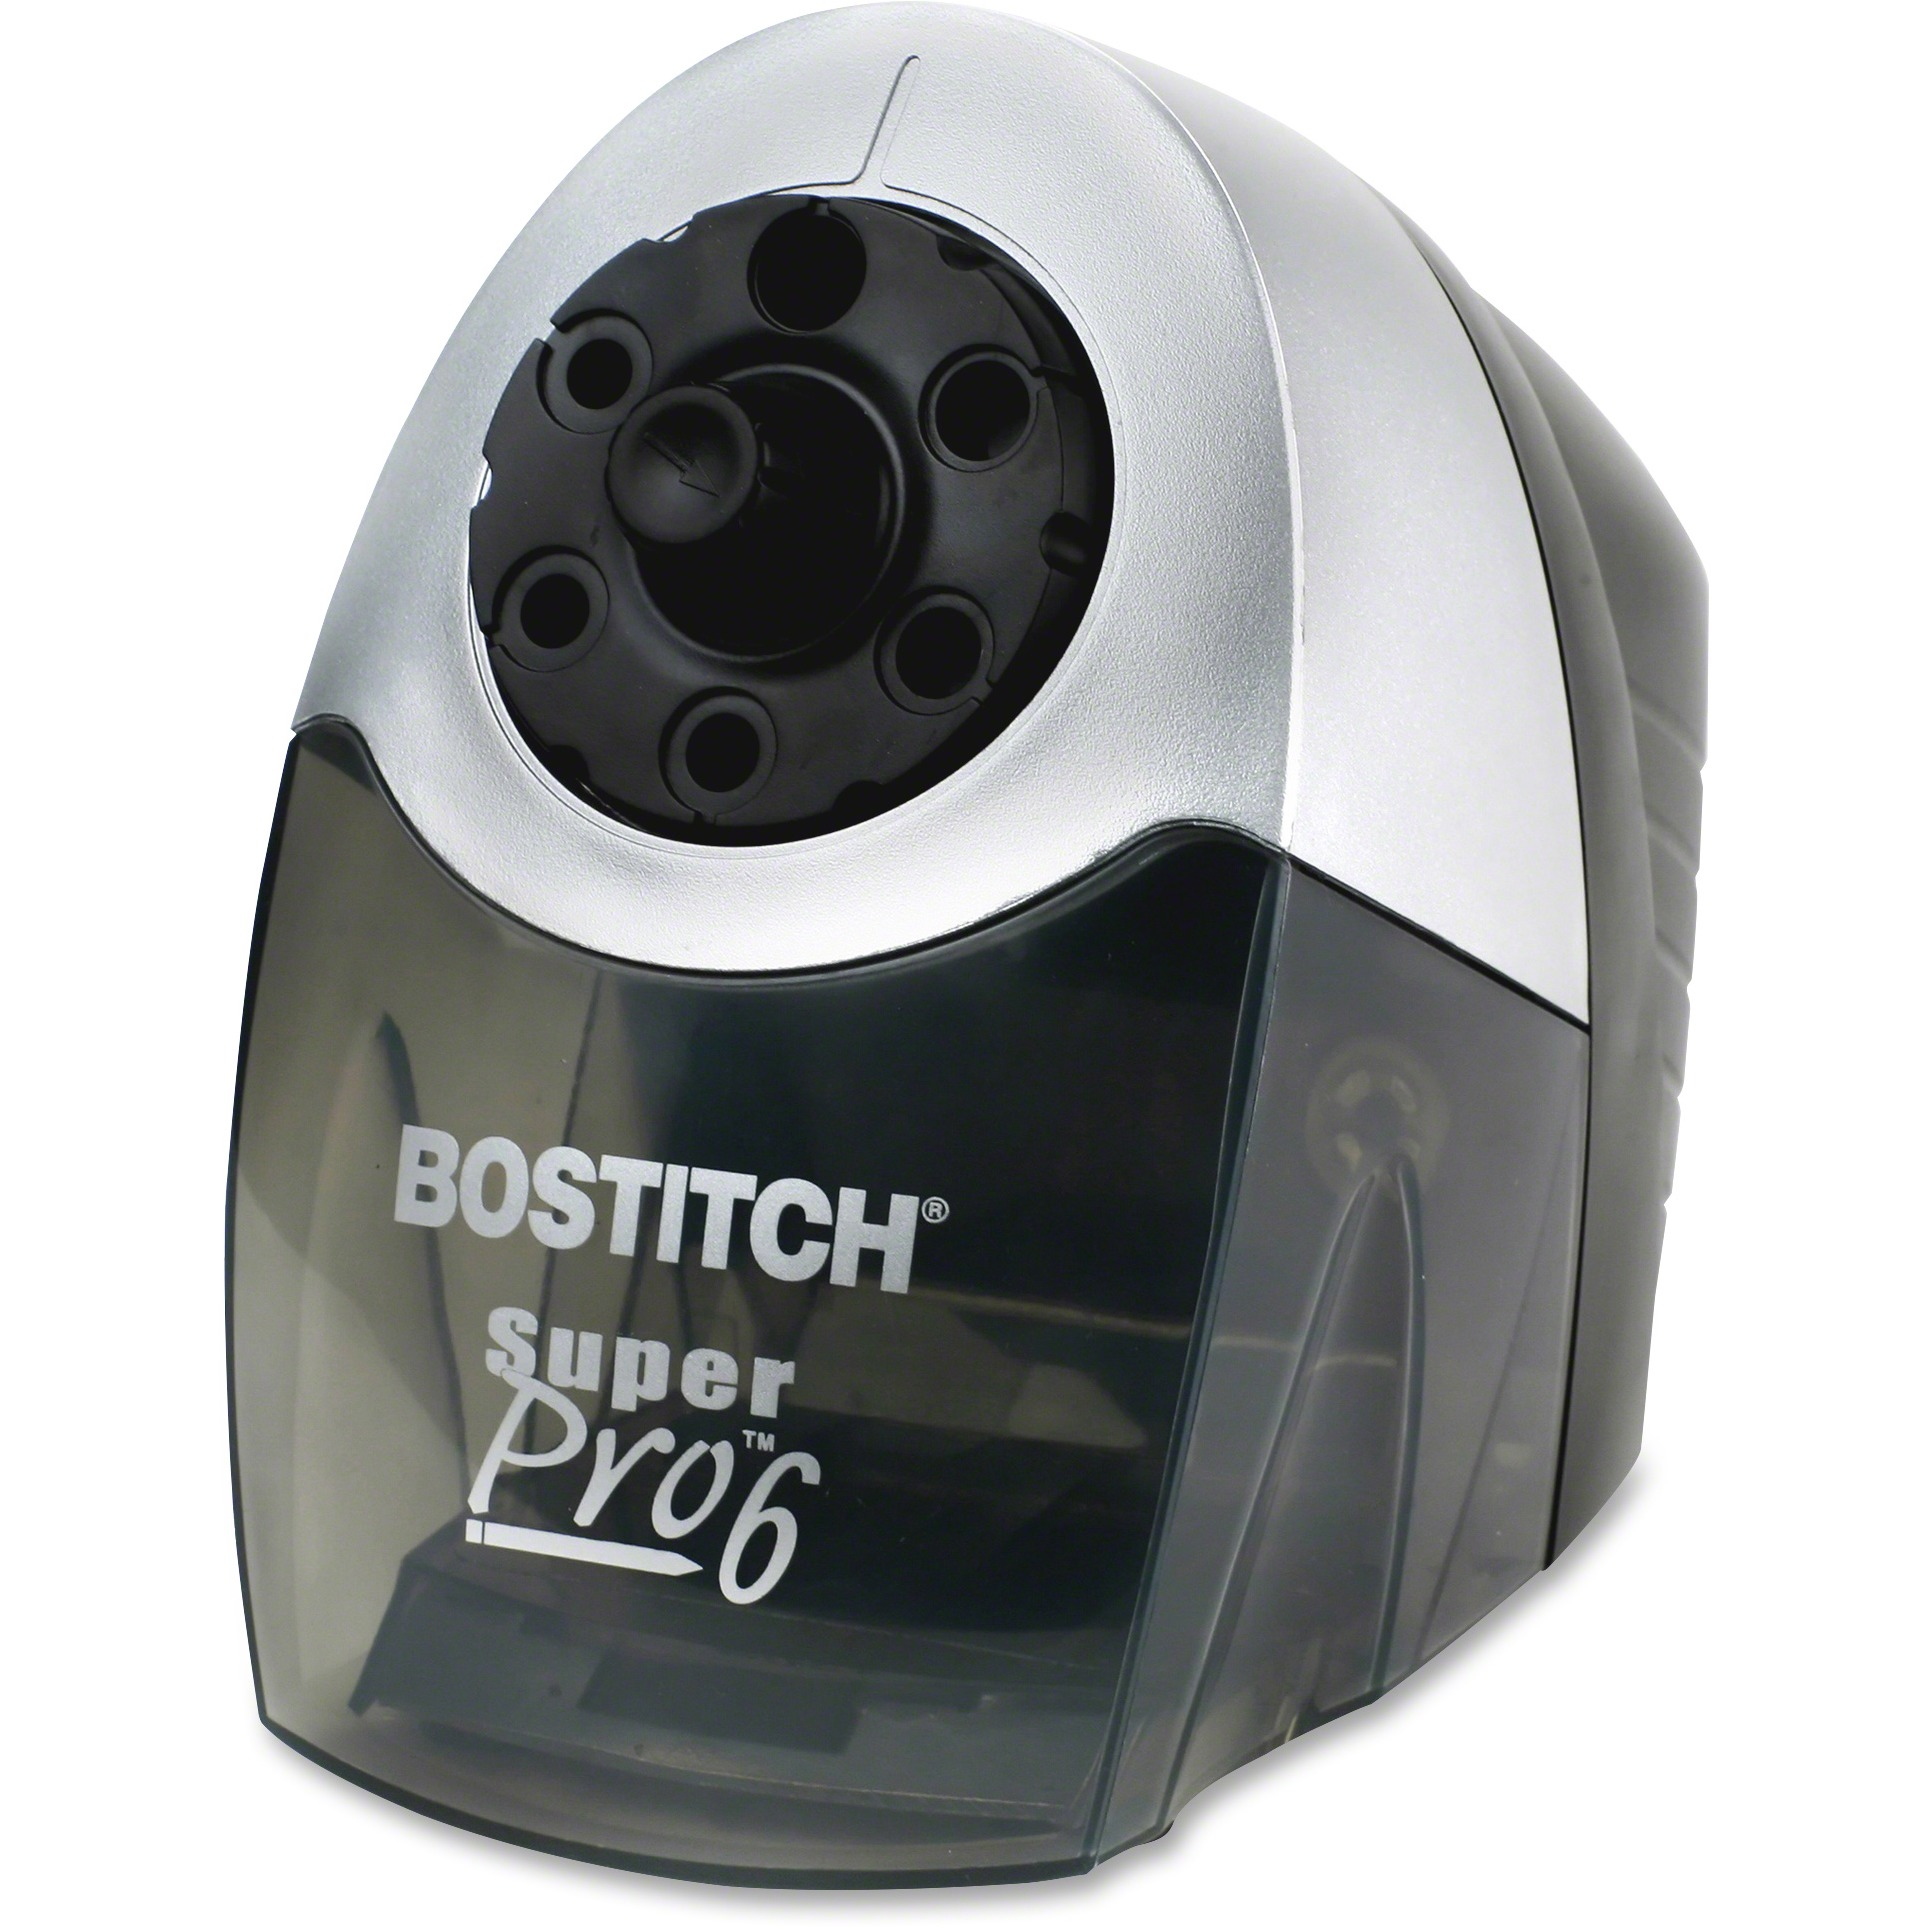 Bostitch Super Pro 6 Commercial Electric Pencil Sharpener, Gray Black by Amax Inc